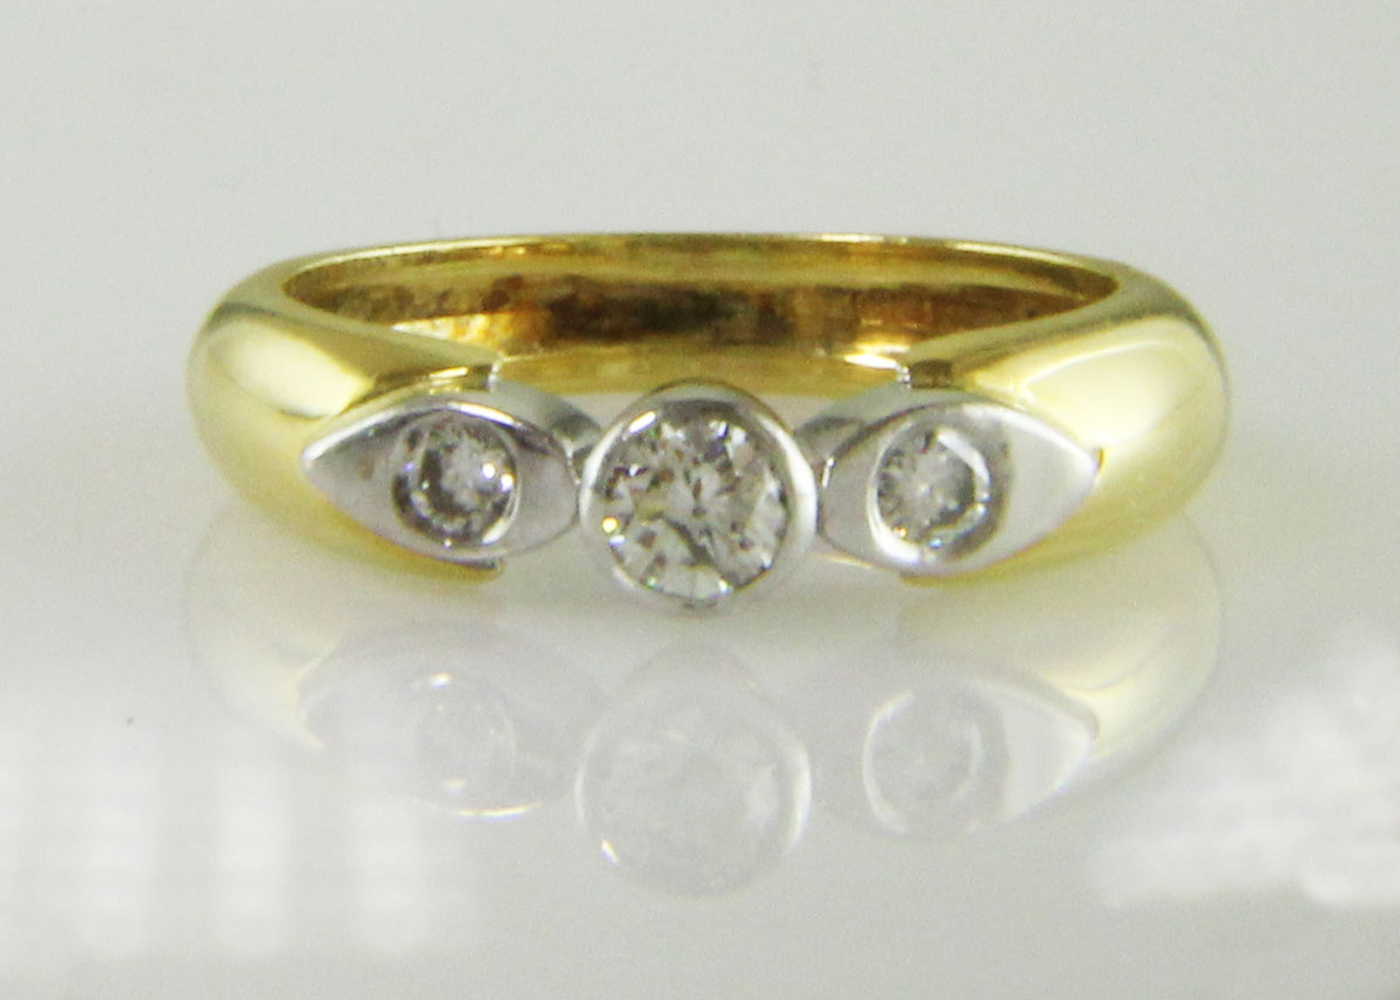 18ct Stone Set Shoulder Diamond Ring 0.41 Carats - Image 6 of 8